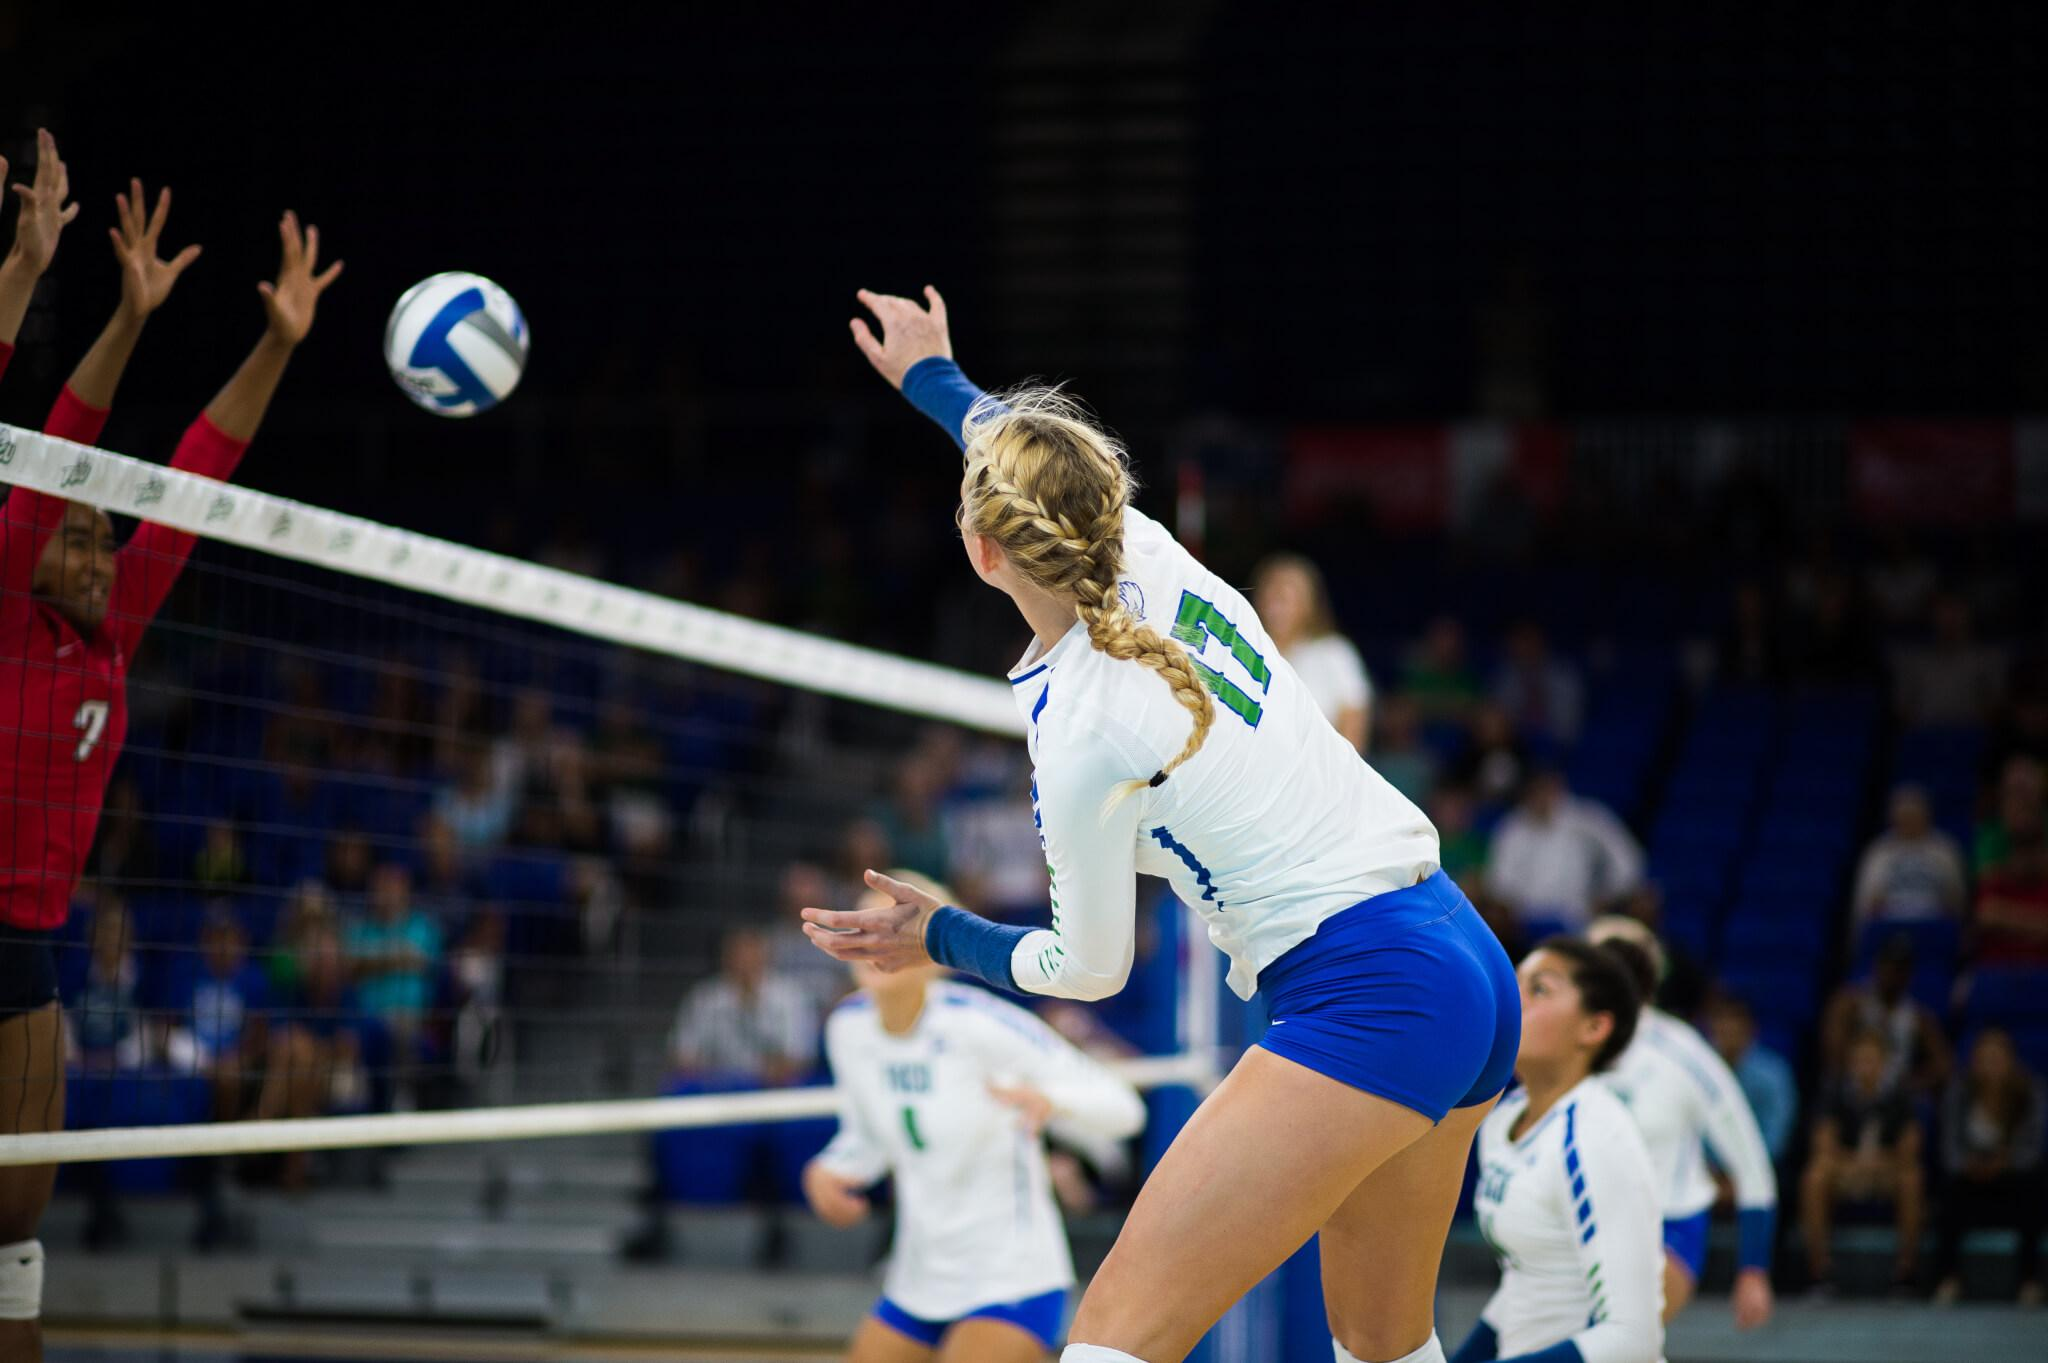 Preview: Volleyball vs. Kennesaw State